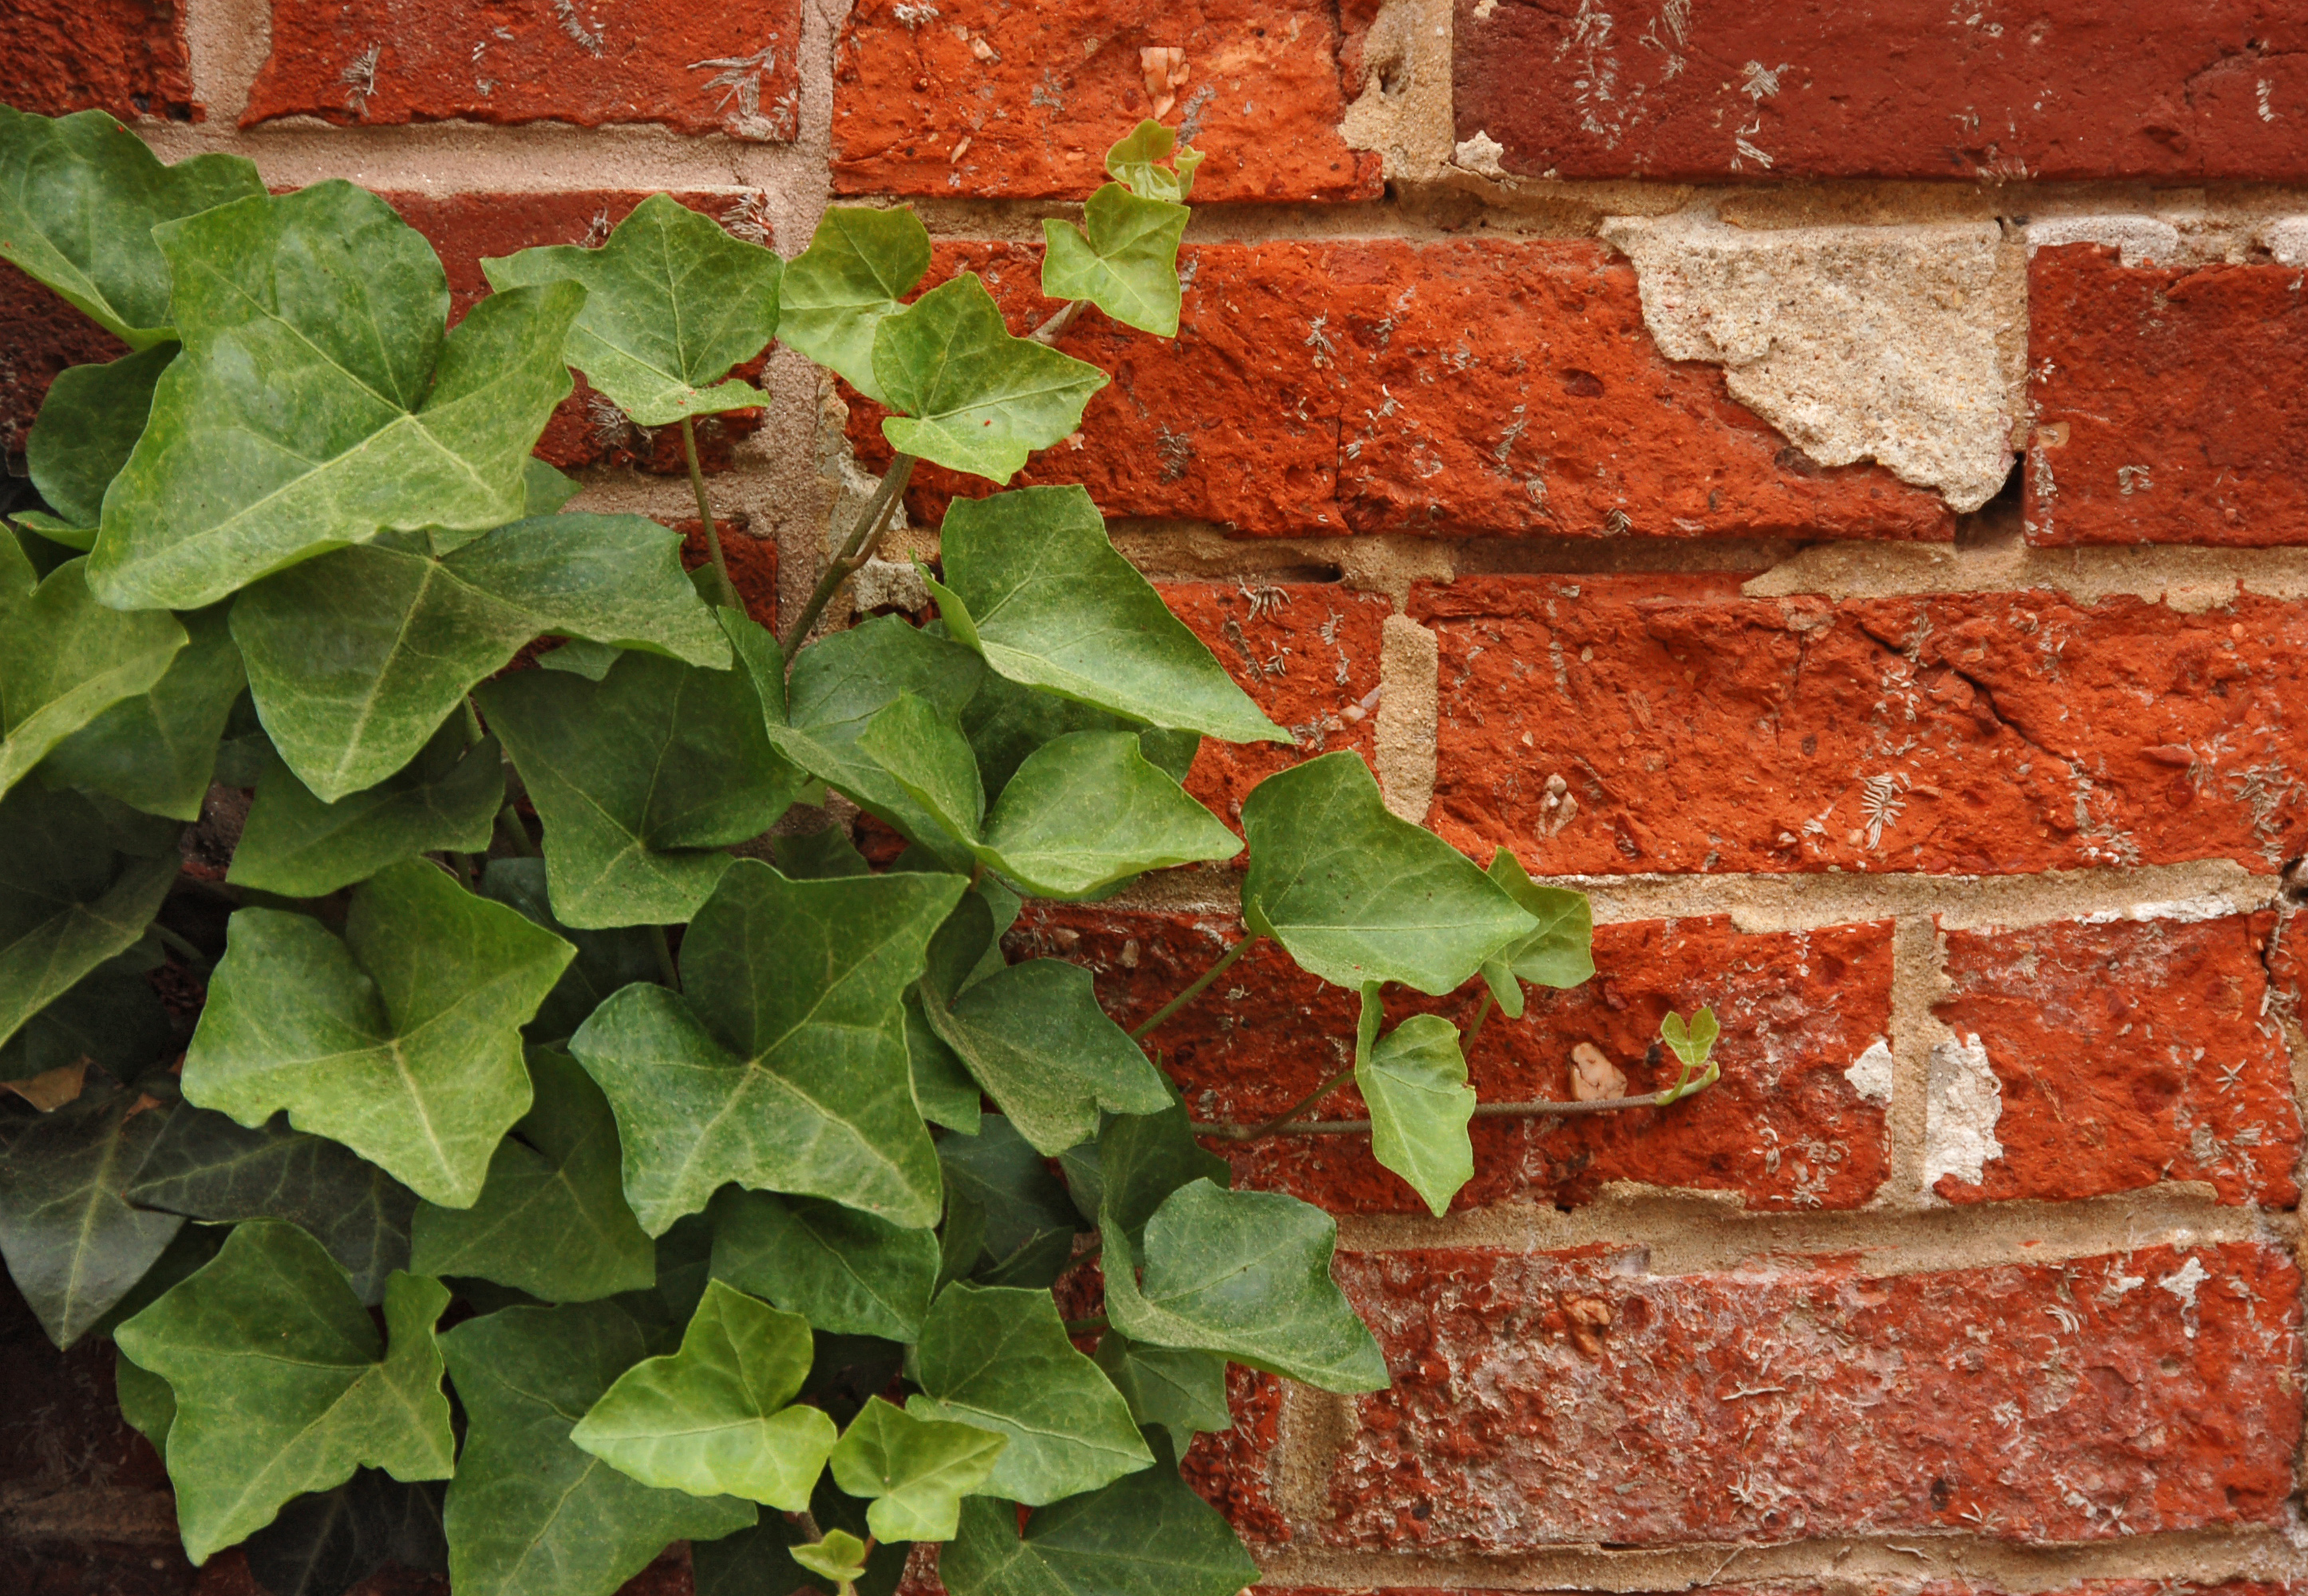 English Ivy growing on a red brick wall